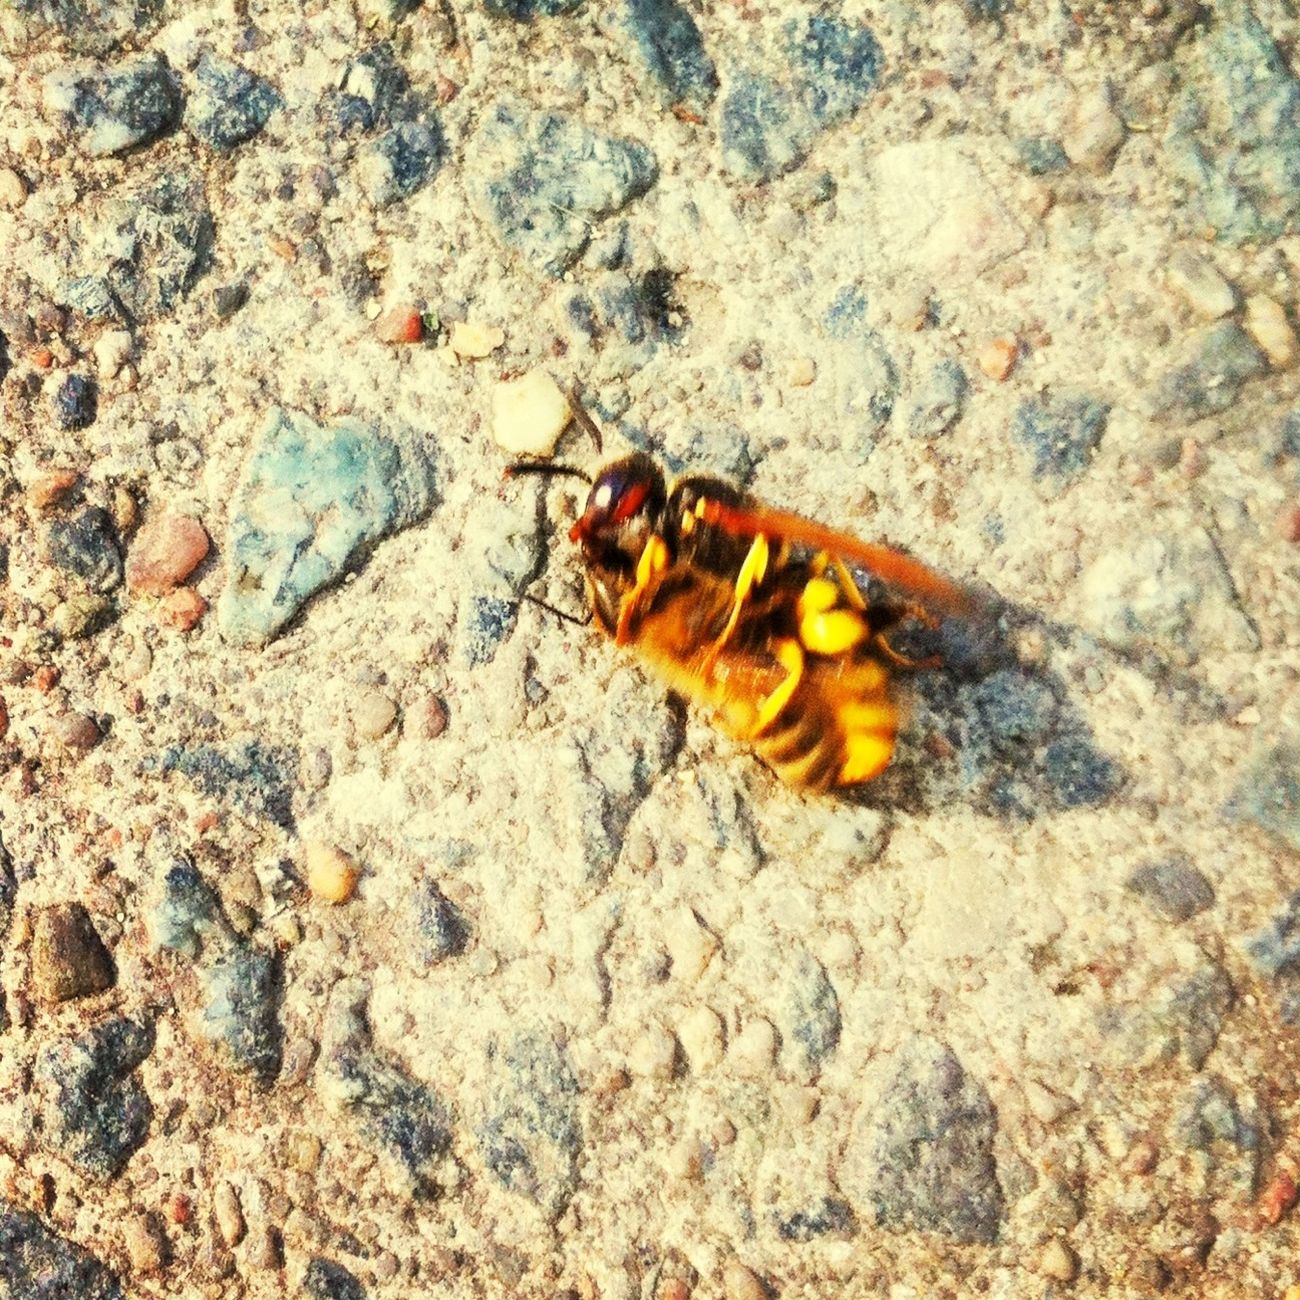 Wasp vs. Bee